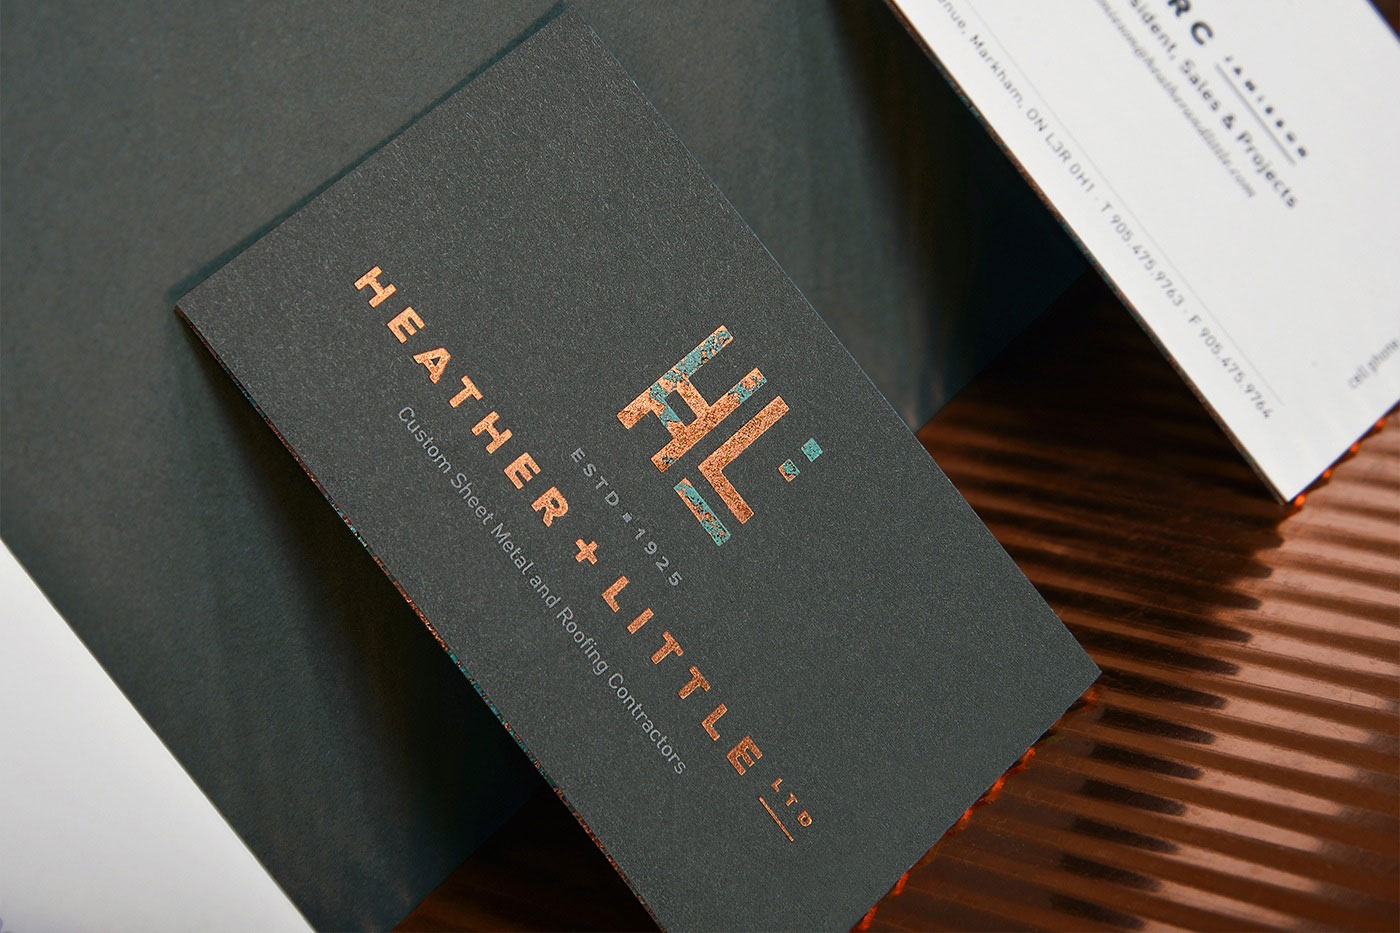 Heather & Little Identity Package - PaperSpecs